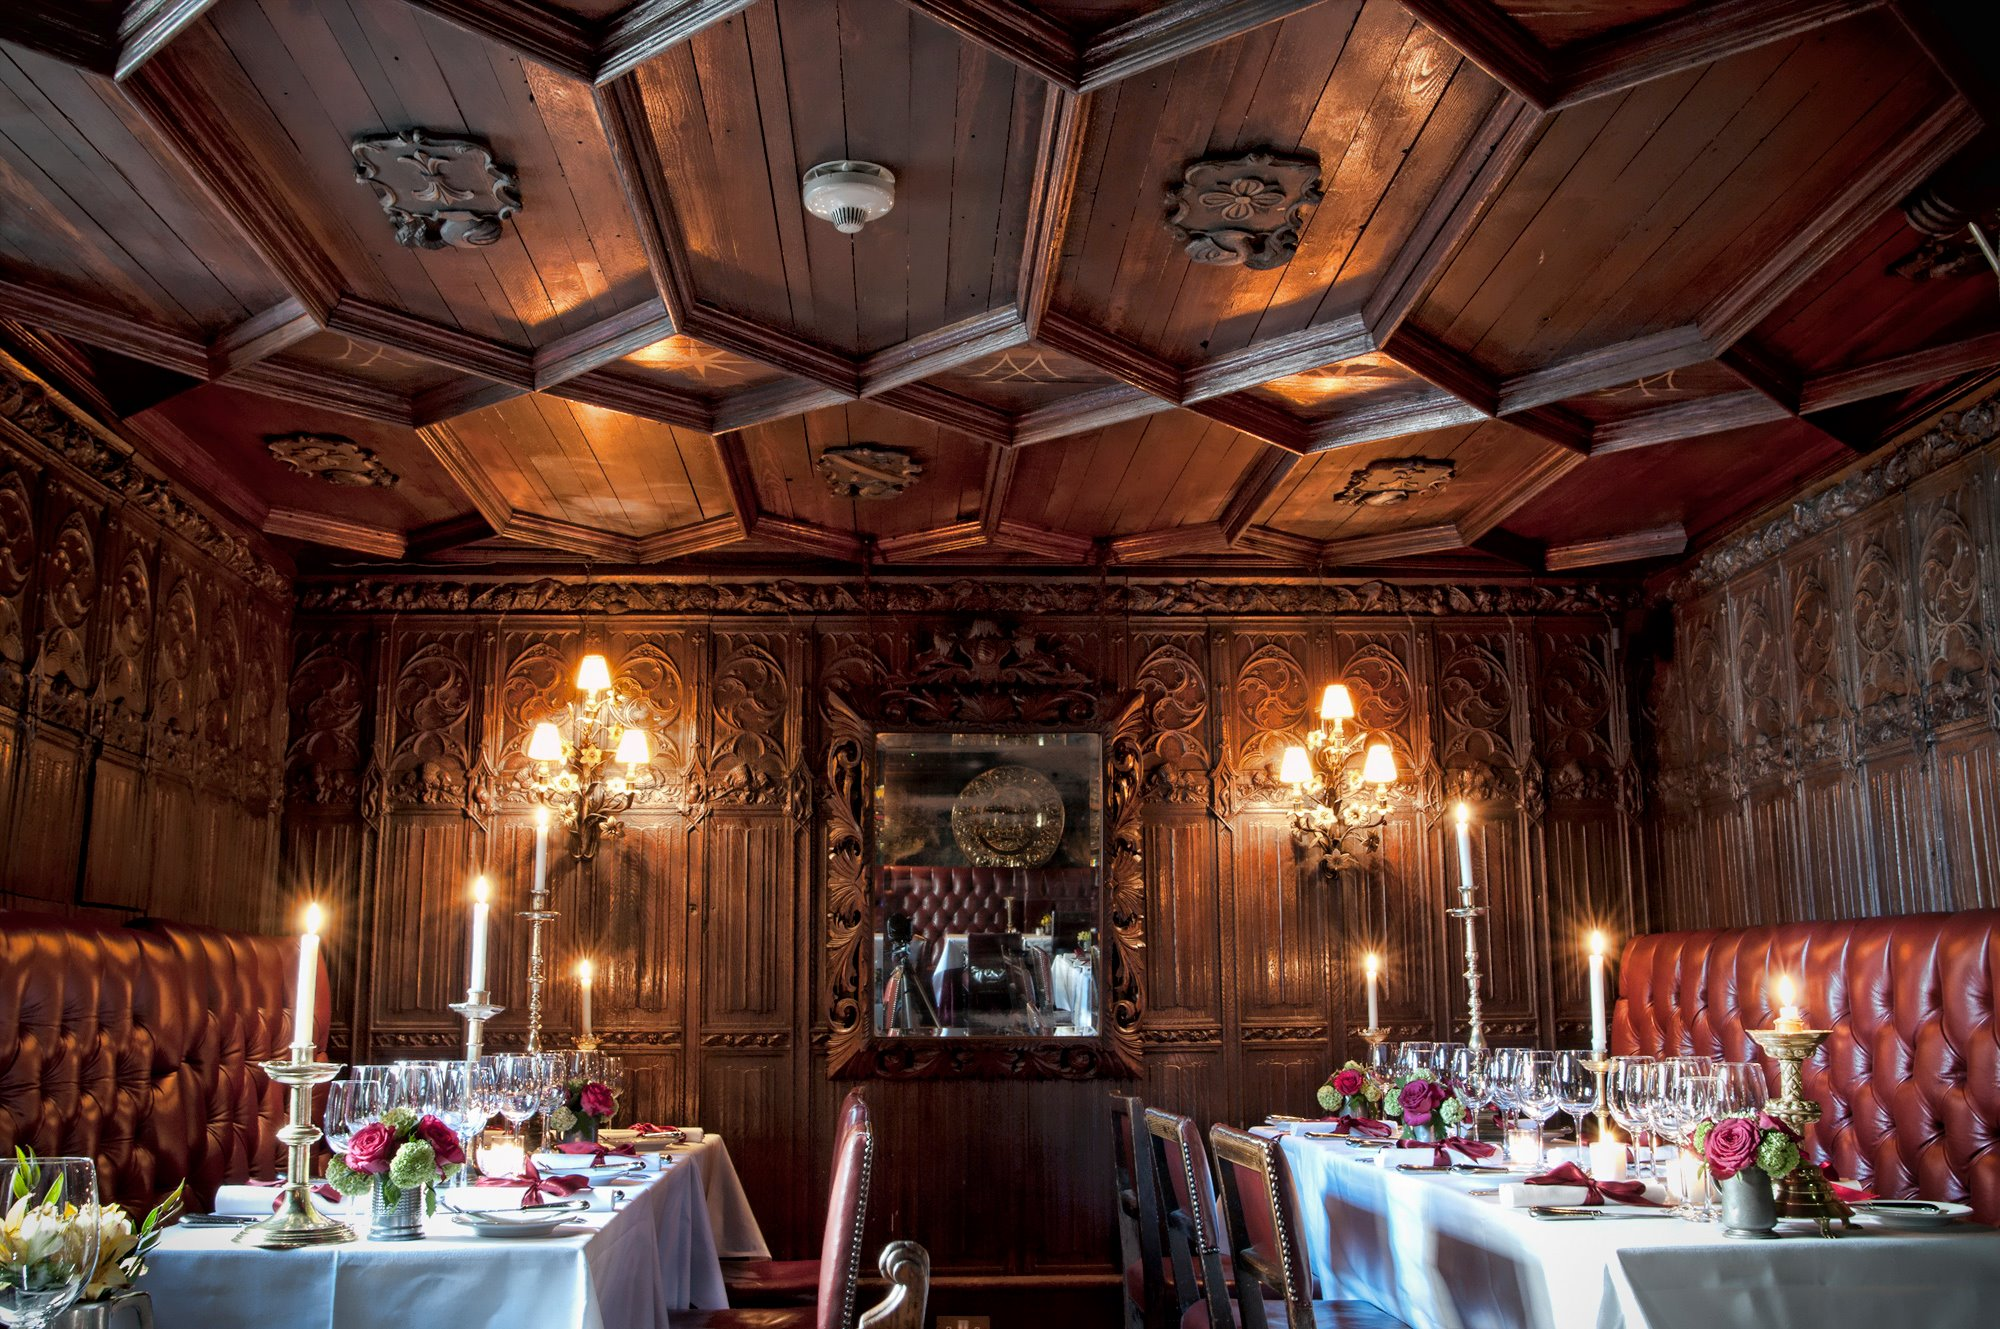 The Witchery by the Castle - restaurante tradicional em Edimburgo | foto: divulgação